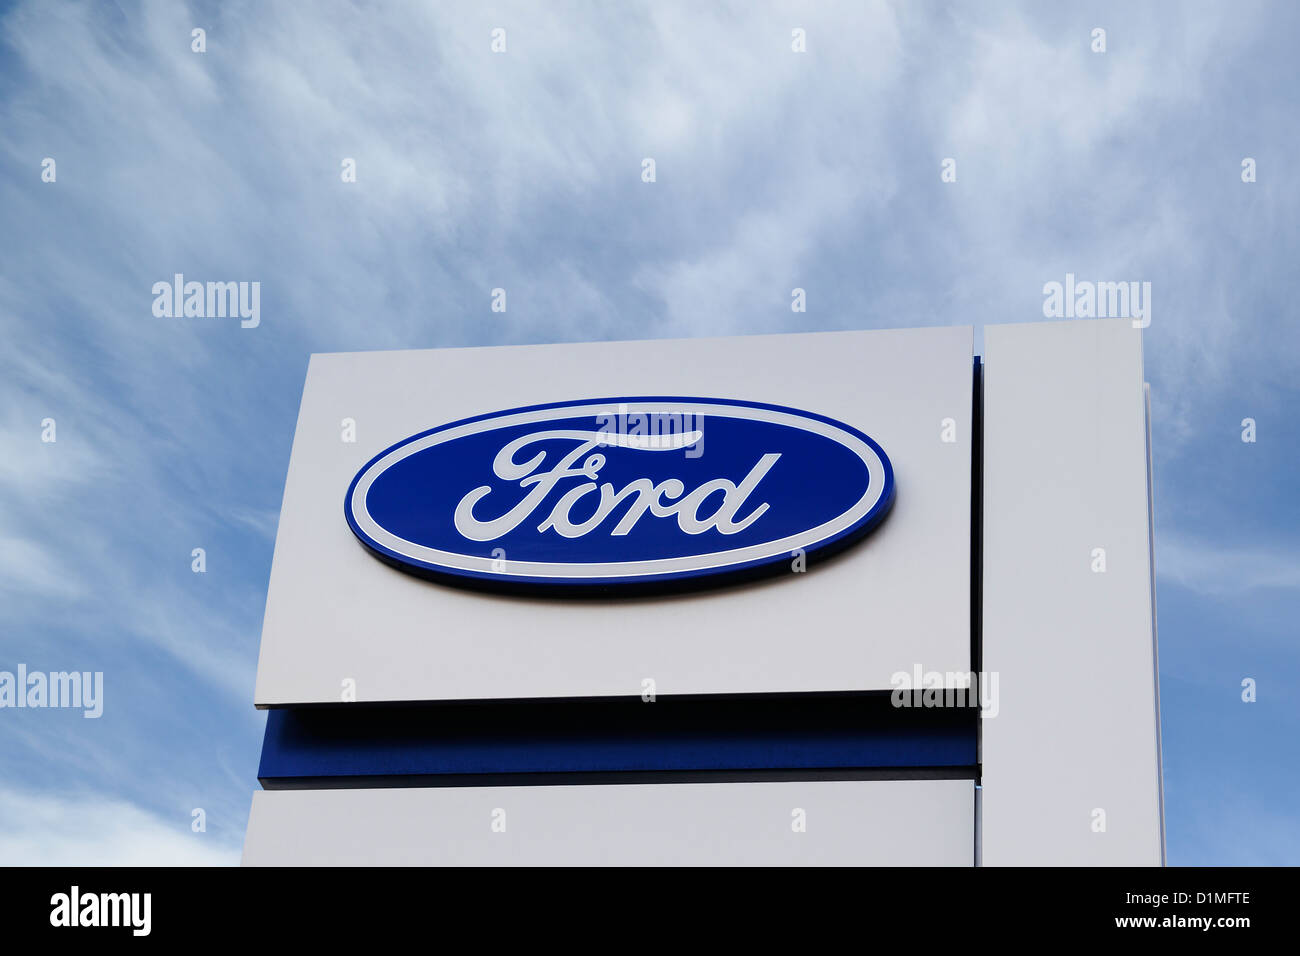 Ford Symbol Stock Photos Ford Symbol Stock Images Alamy